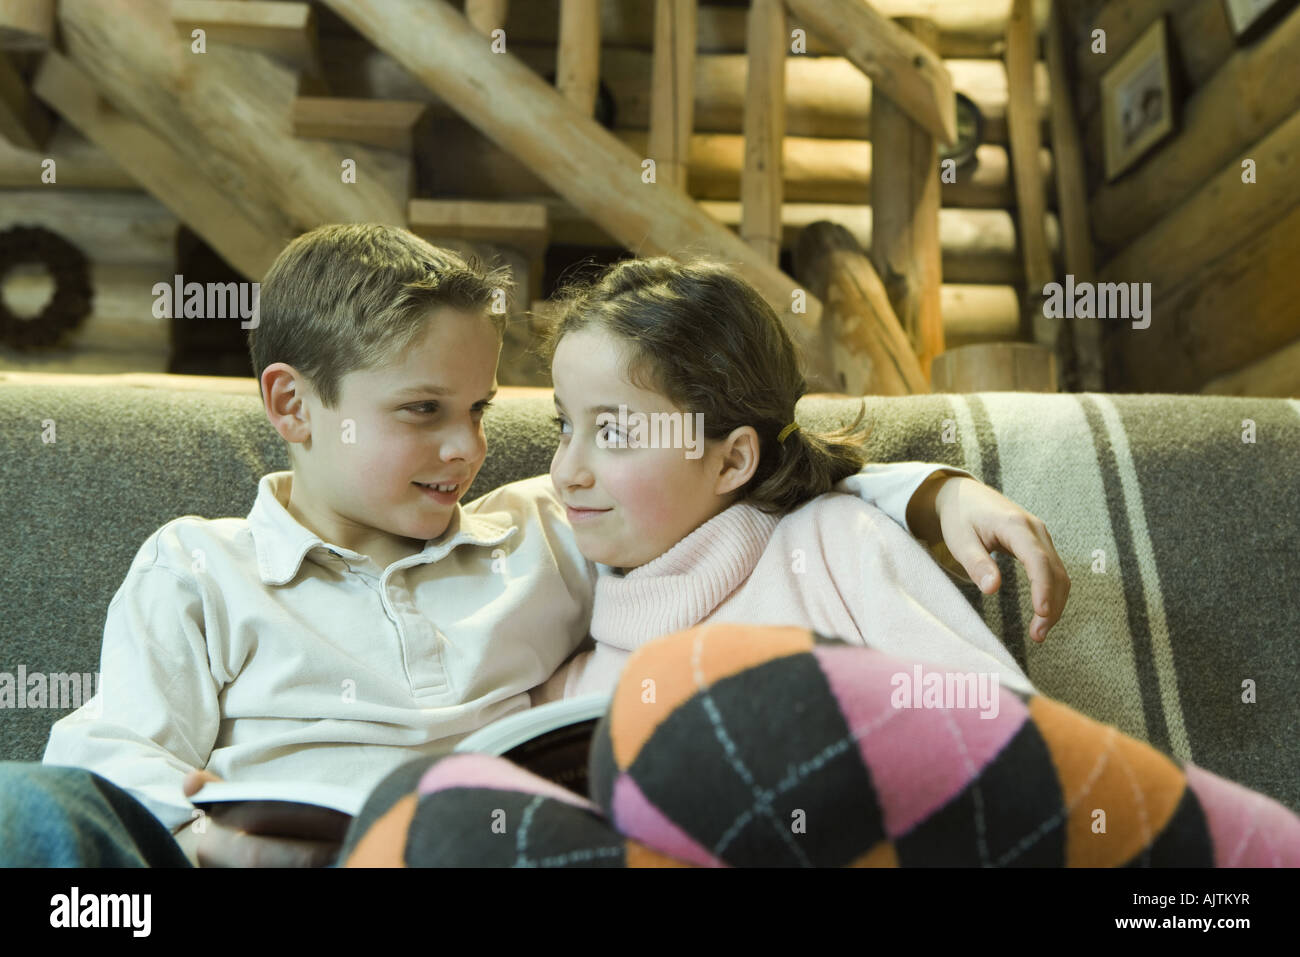 Preteen boy and girl with book, smiling at each other - Stock Image